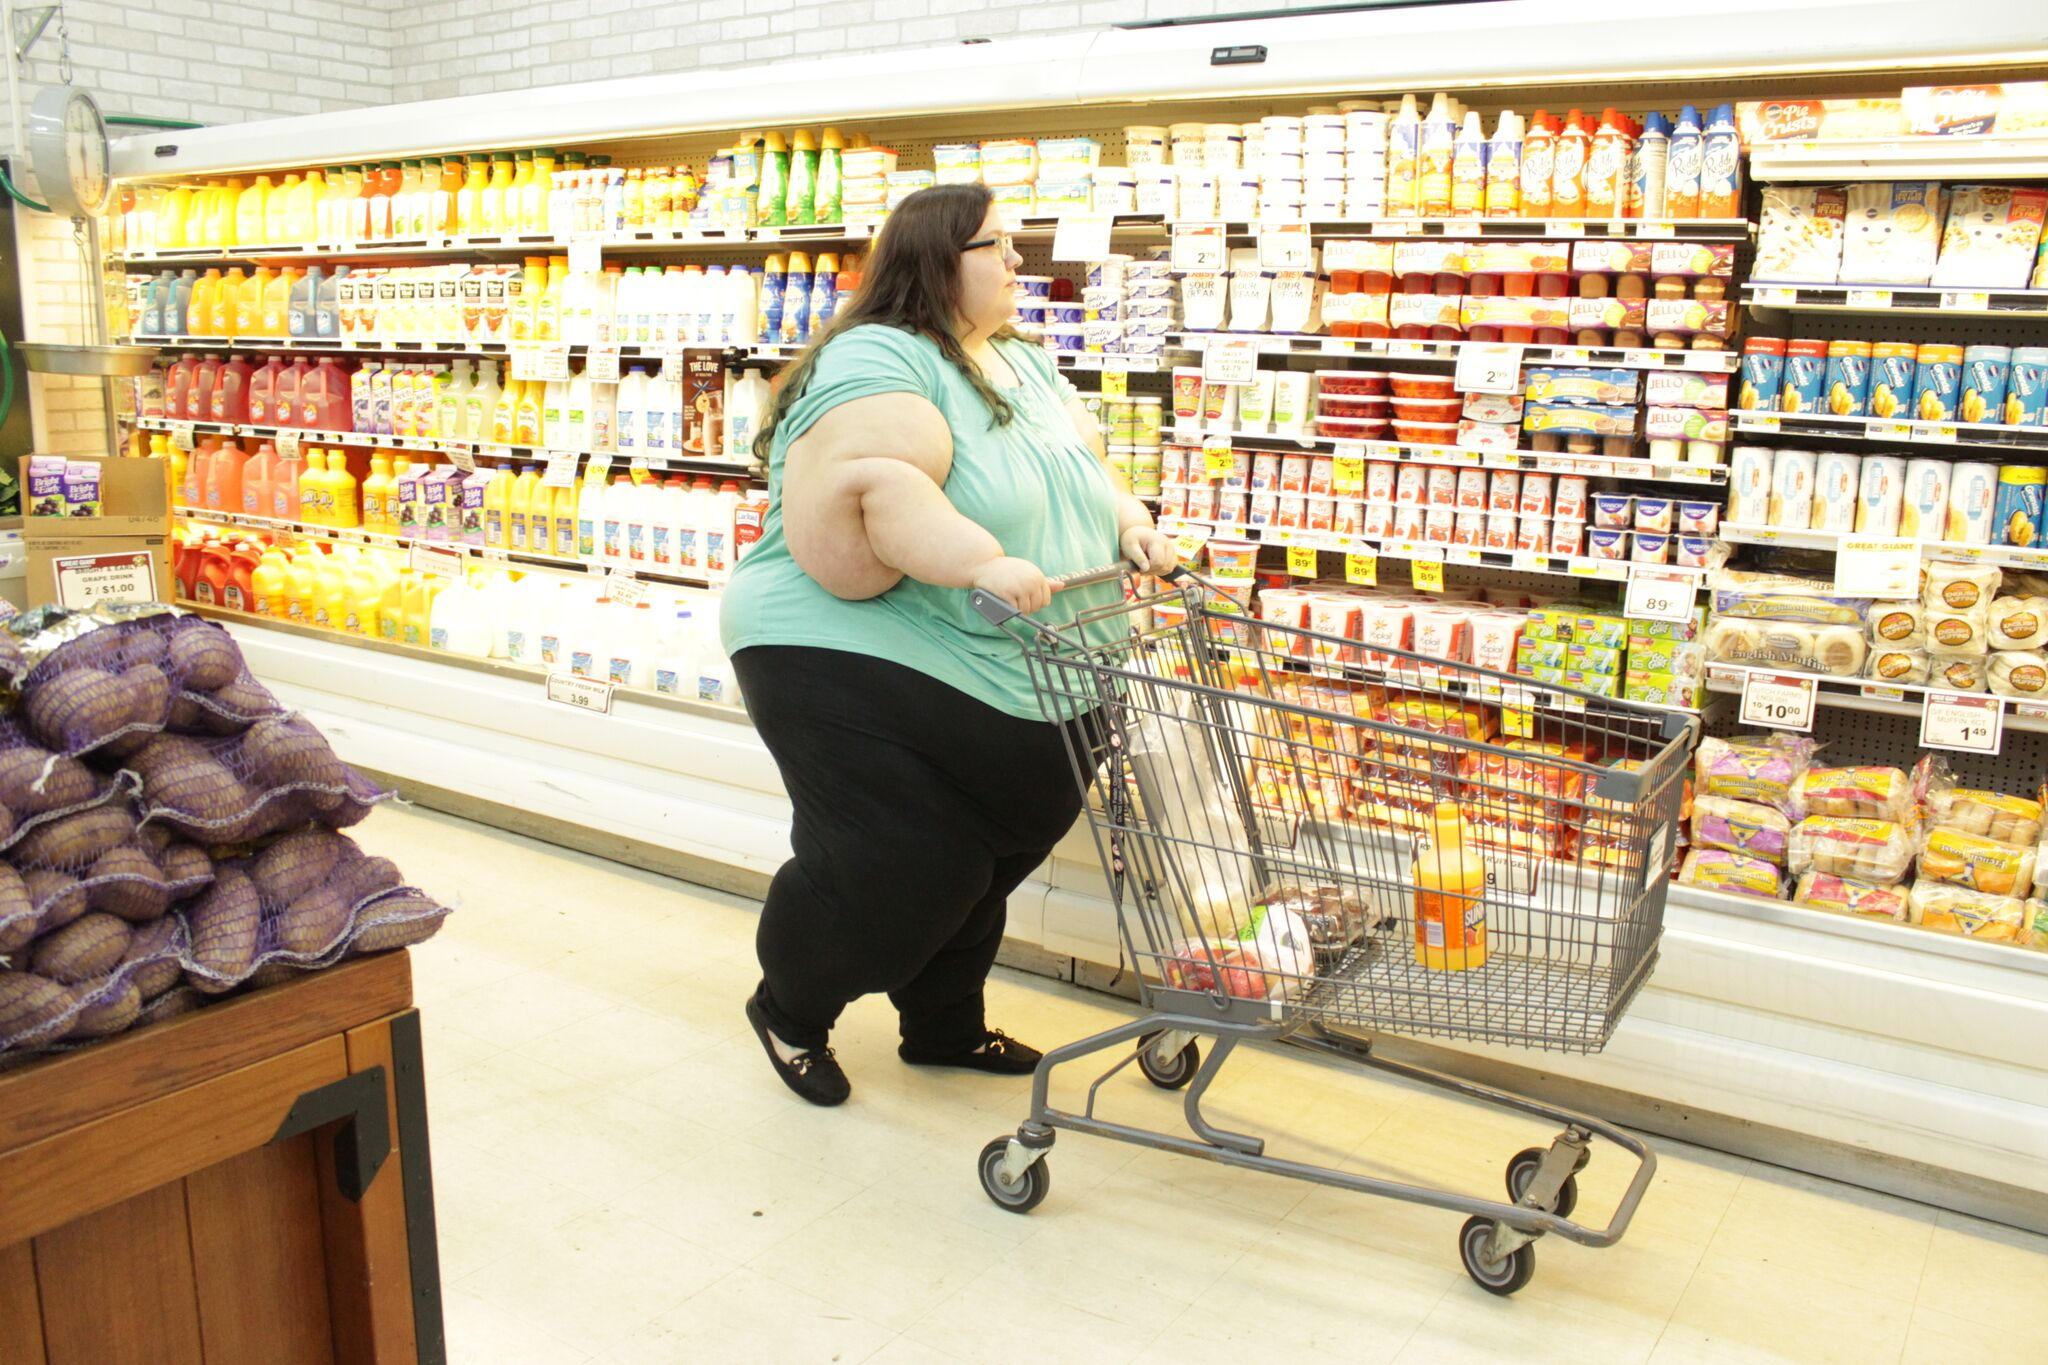 My 600-lb Life Season 7, Episode 6: Lacey starts lazy but